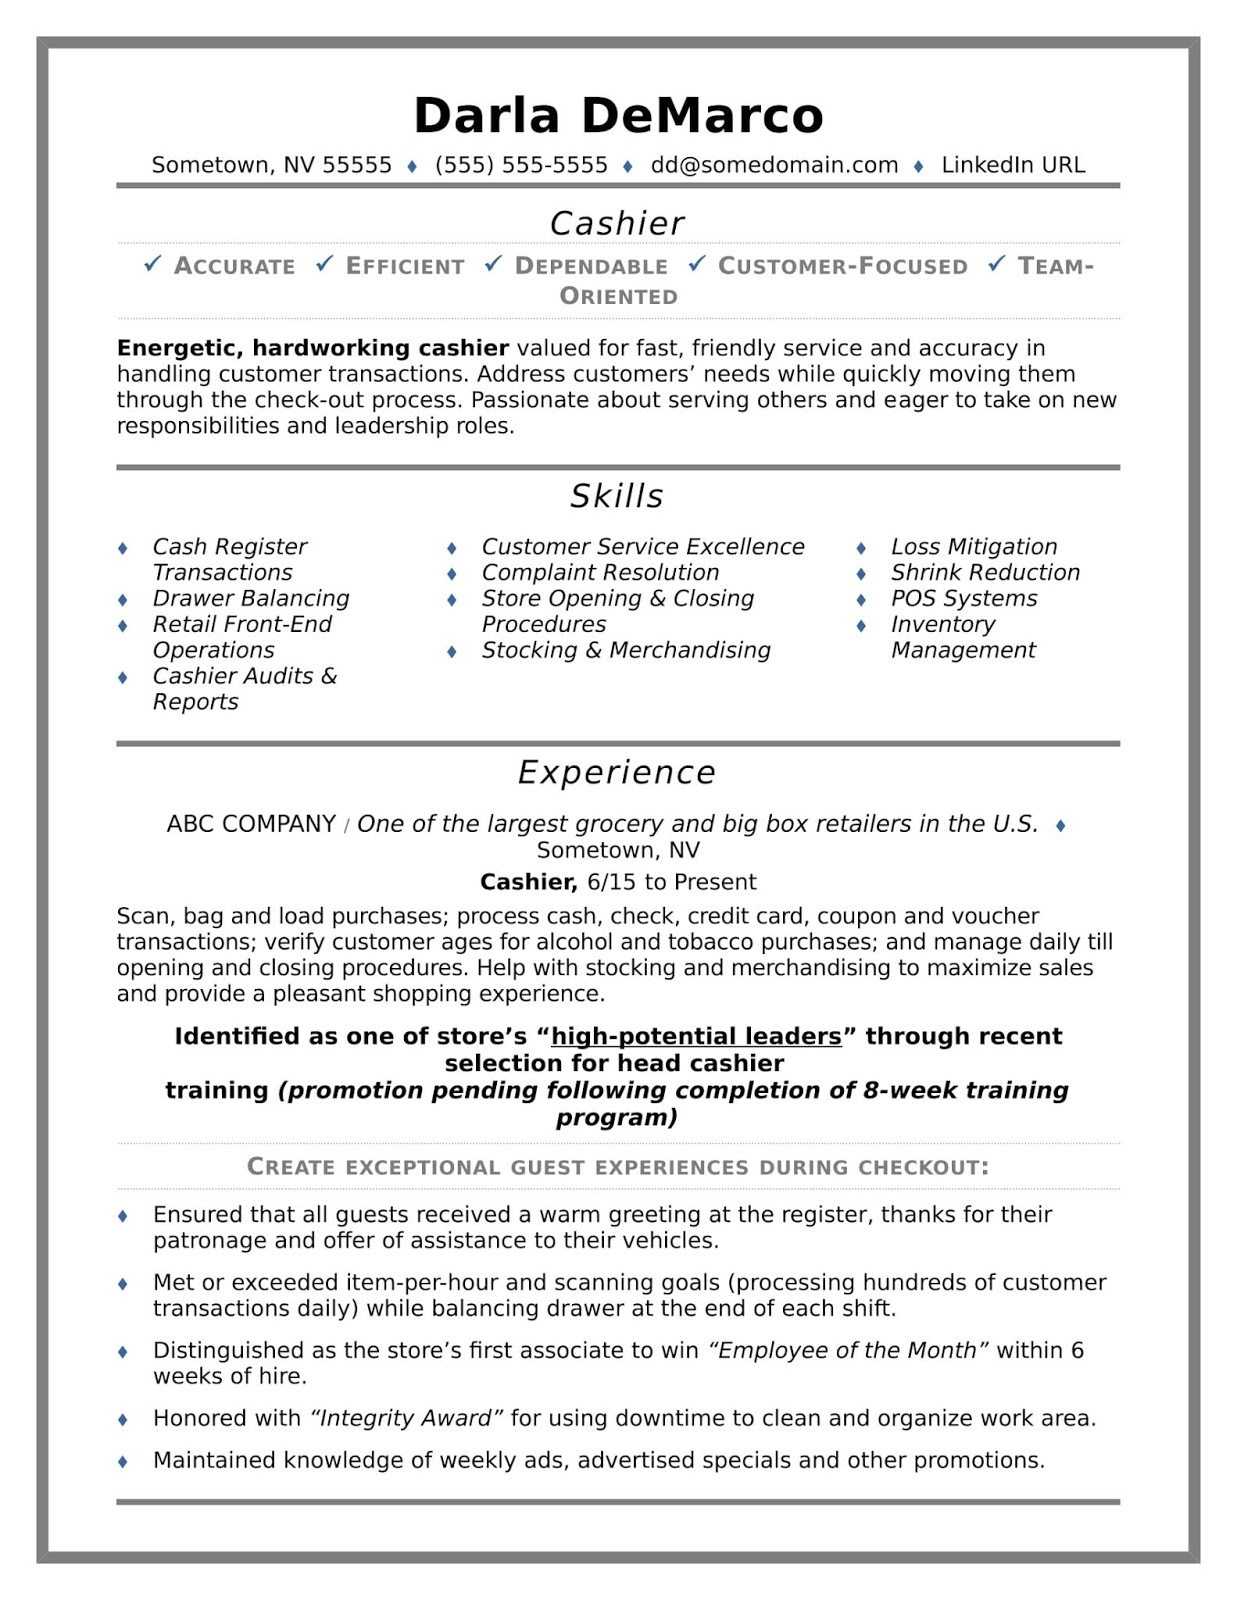 grocery store cashier resume, grocery store cashier resume description, grocery store cashier resume objective, grocery store clerk resume, grocery store clerk resume sample, grocery store clerk resume no experience grocery store cashier responsibilities resume grocery store stock clerk resume grocery